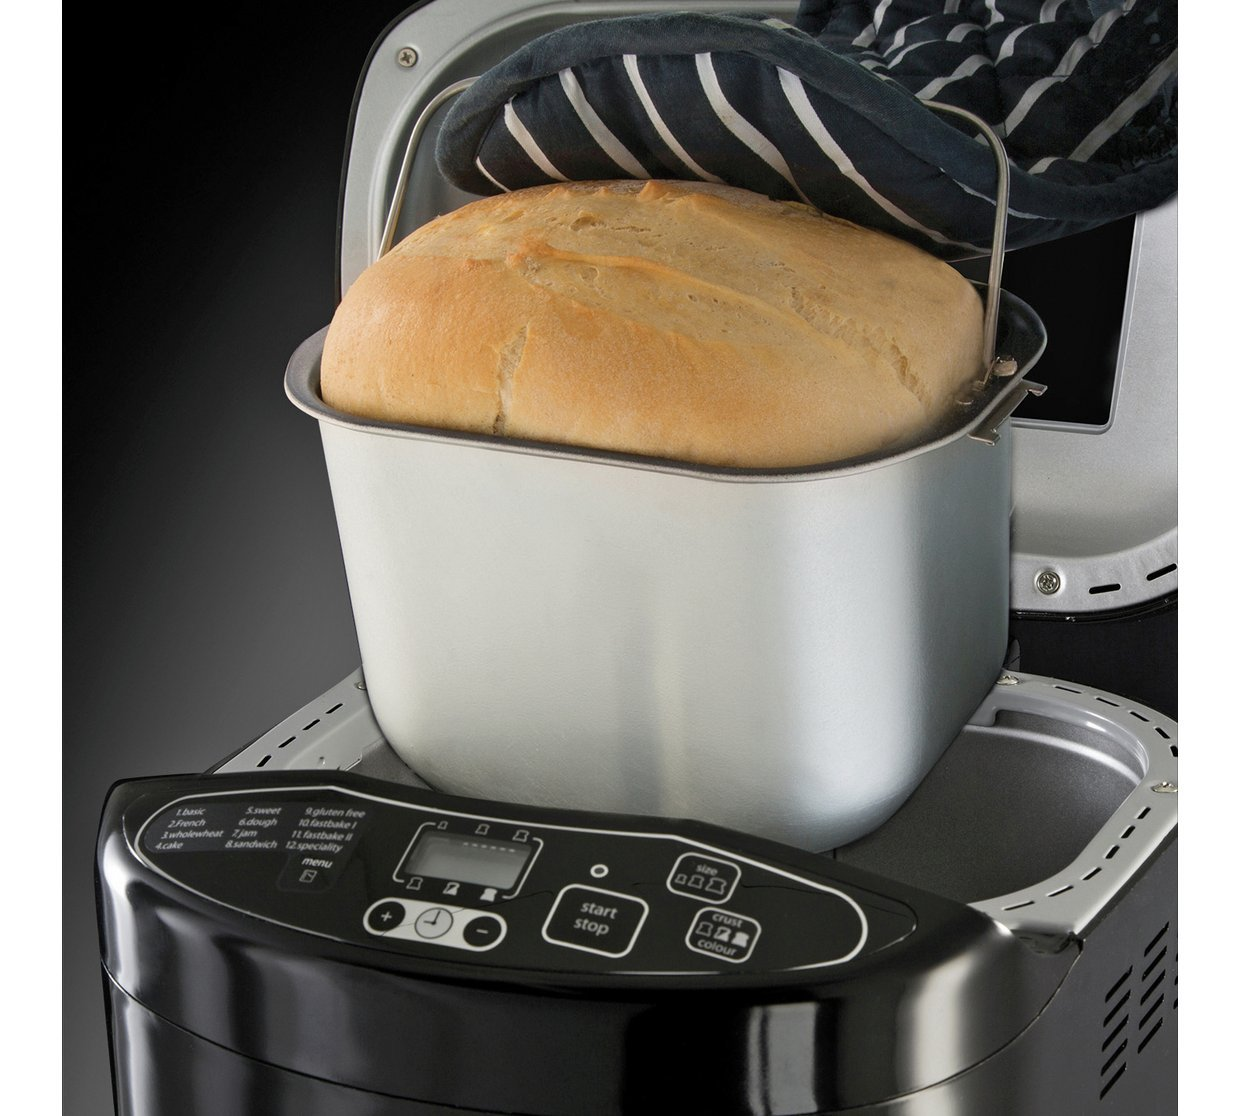 Russell Hobbs Fast Bake 2.2 lb Breadmaker 220 VOLTS OVERSEAS USE ONLY